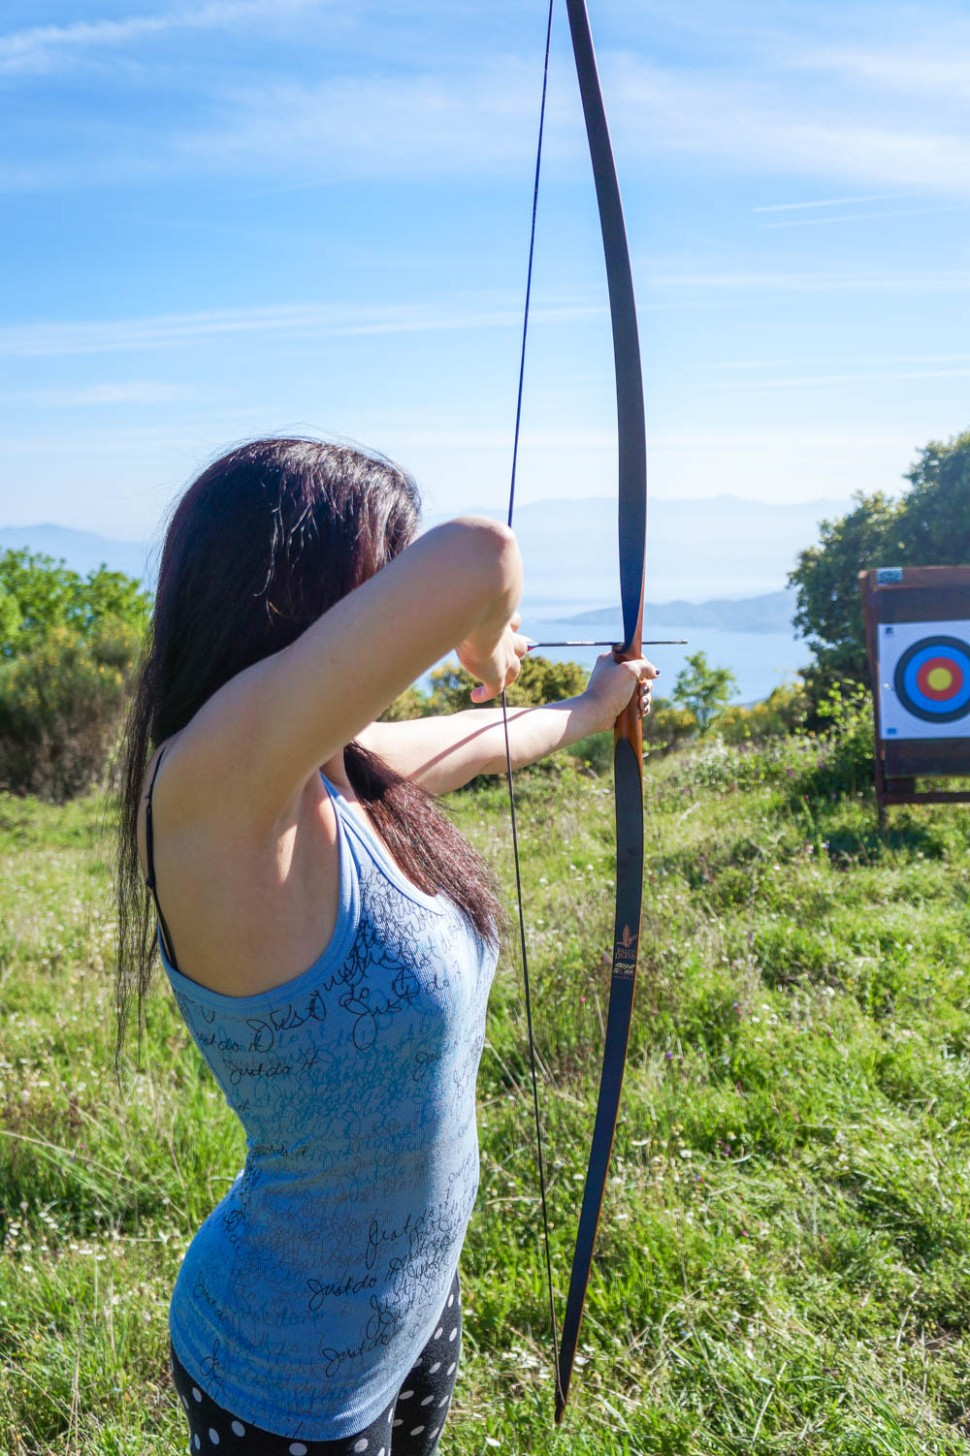 archery-pelion-greece-la-vie-en-blog-all-rights-reserved-4